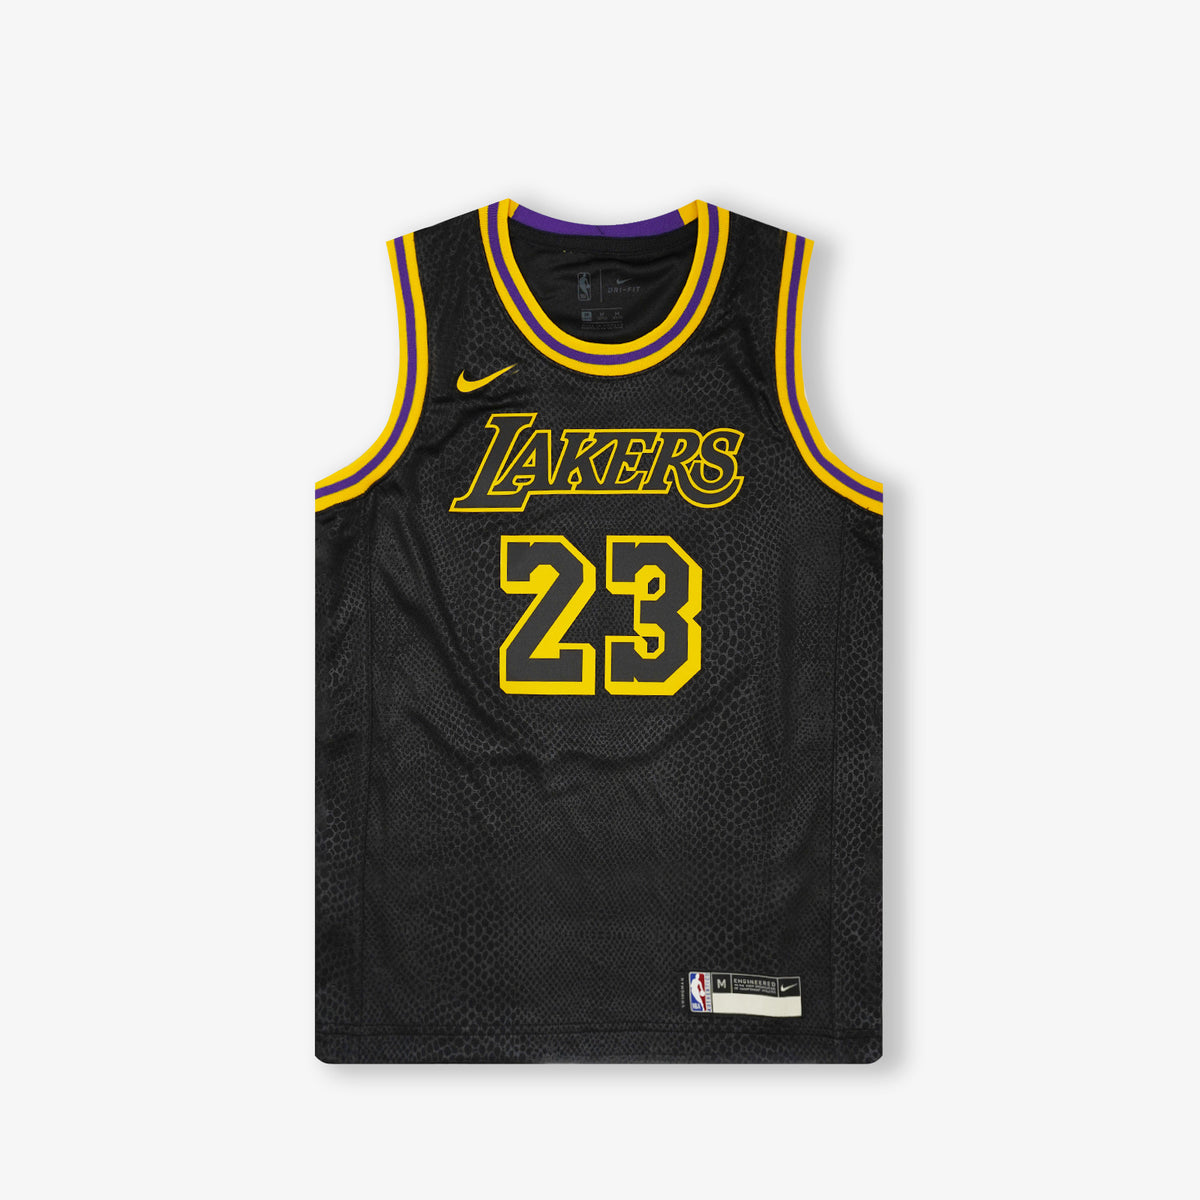 Lebron James Los Angeles Lakers Mamba Edition Youth Swingman Jersey - Black